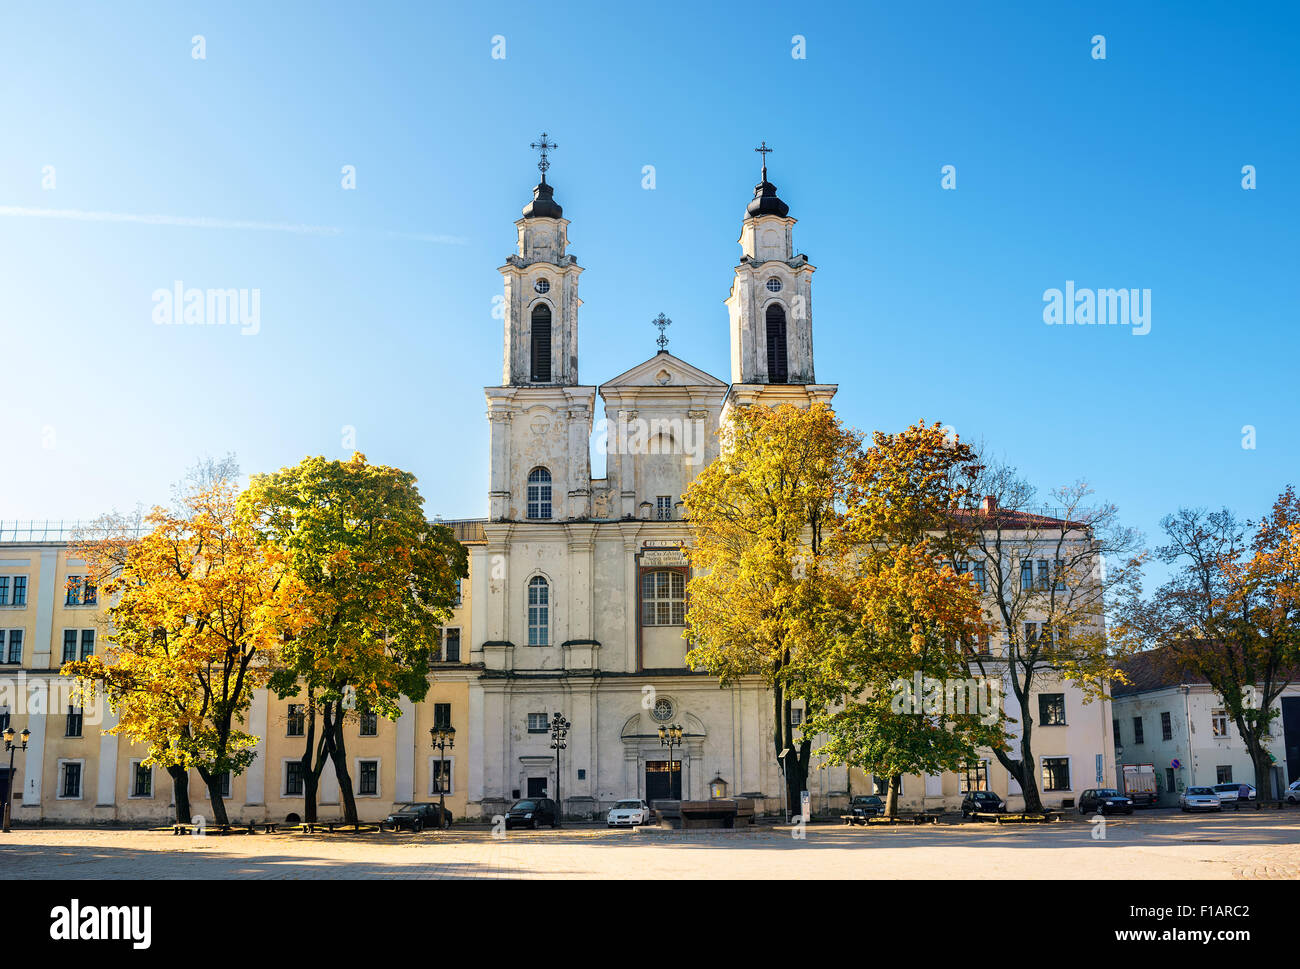 Church in Kaunas, Lithuania. - Stock Image